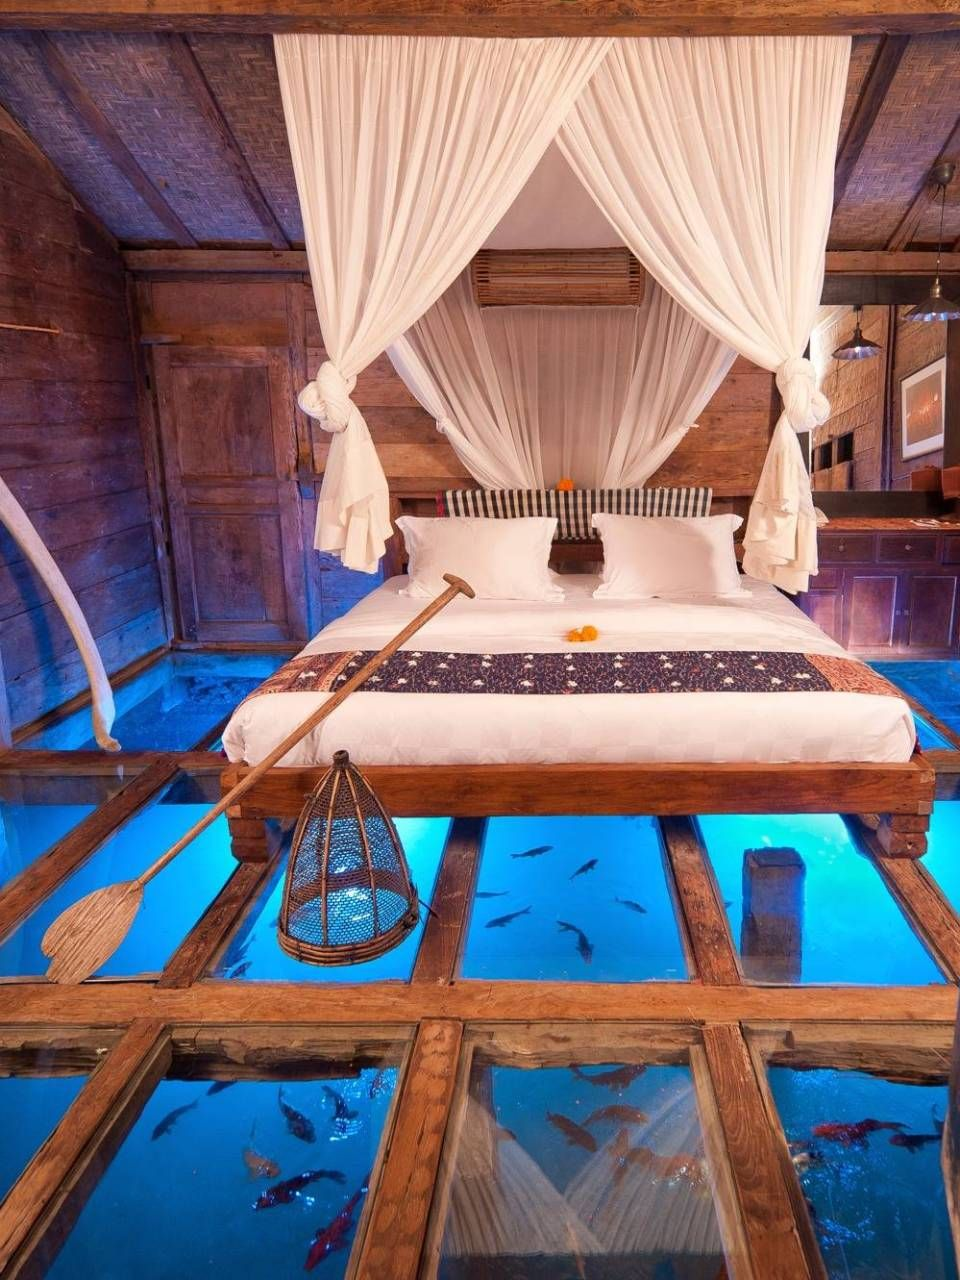 If You Book A Room At Any Of These World S Coolest Hotels You Ll